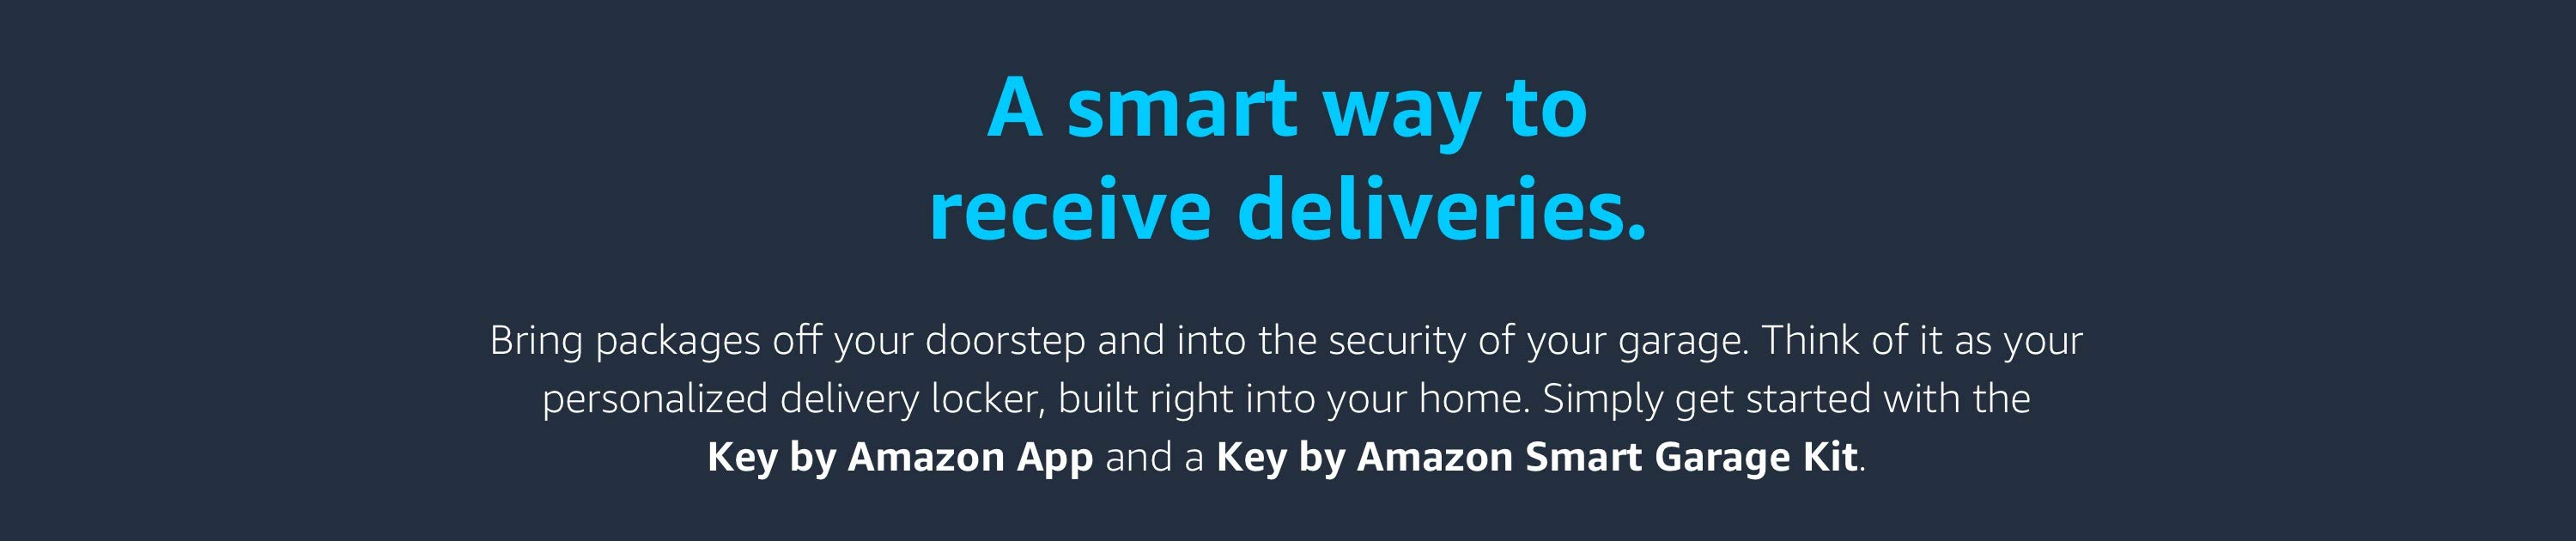 A smart way to receive deliveries